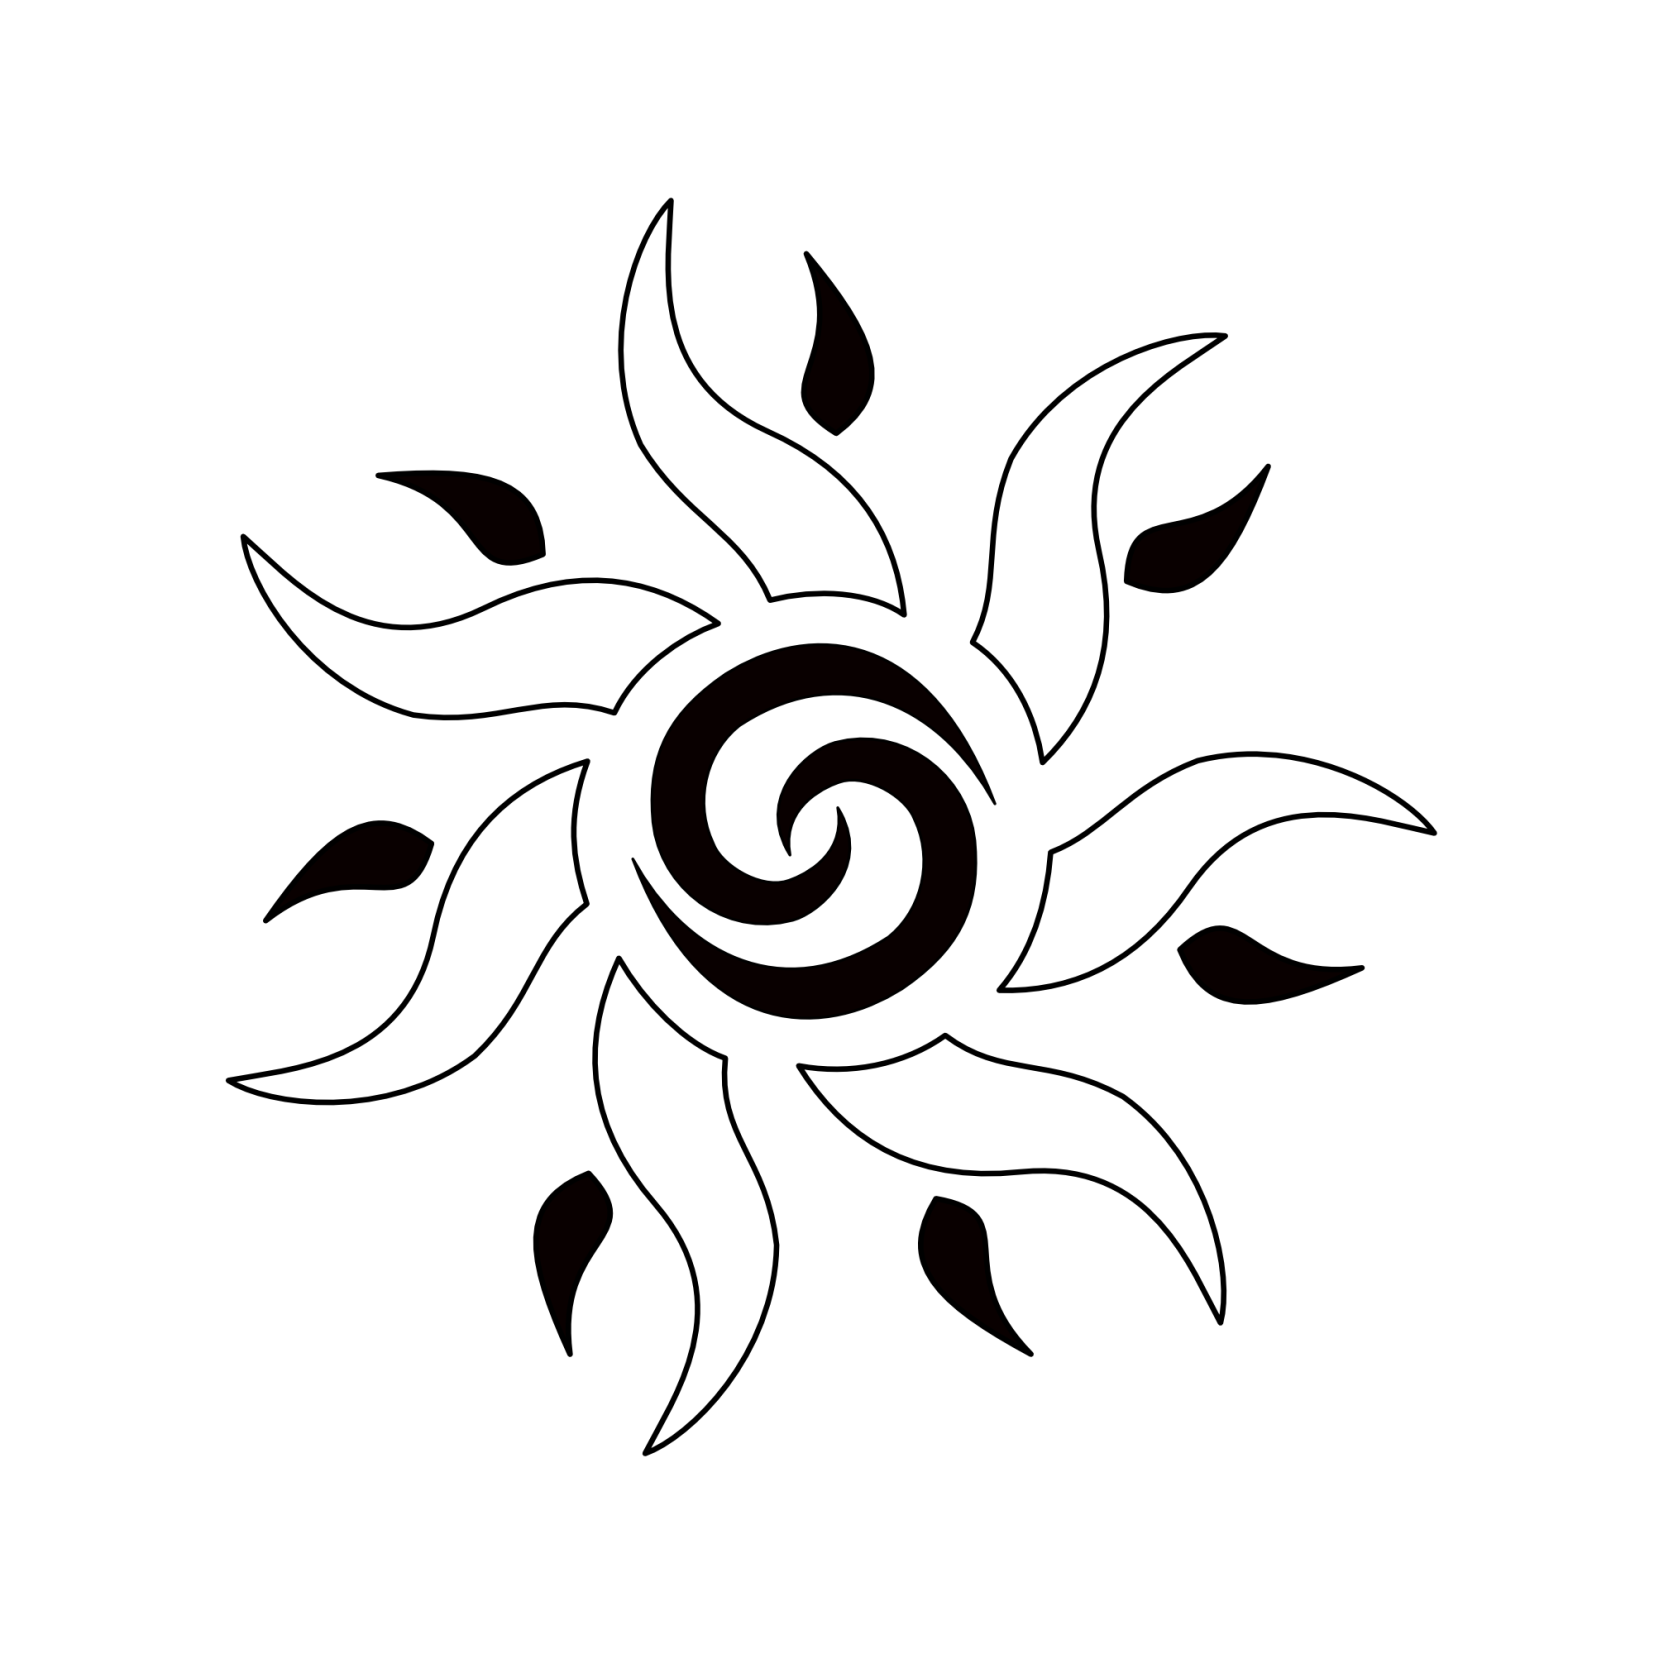 Tattoo tribes shape your dreams tattoos with meaning sun unity tattoo tribes tattoo of sun unity fertility tattoosun unity fertility courage tattoo royaty free tribal tattoos with meaning biocorpaavc Images